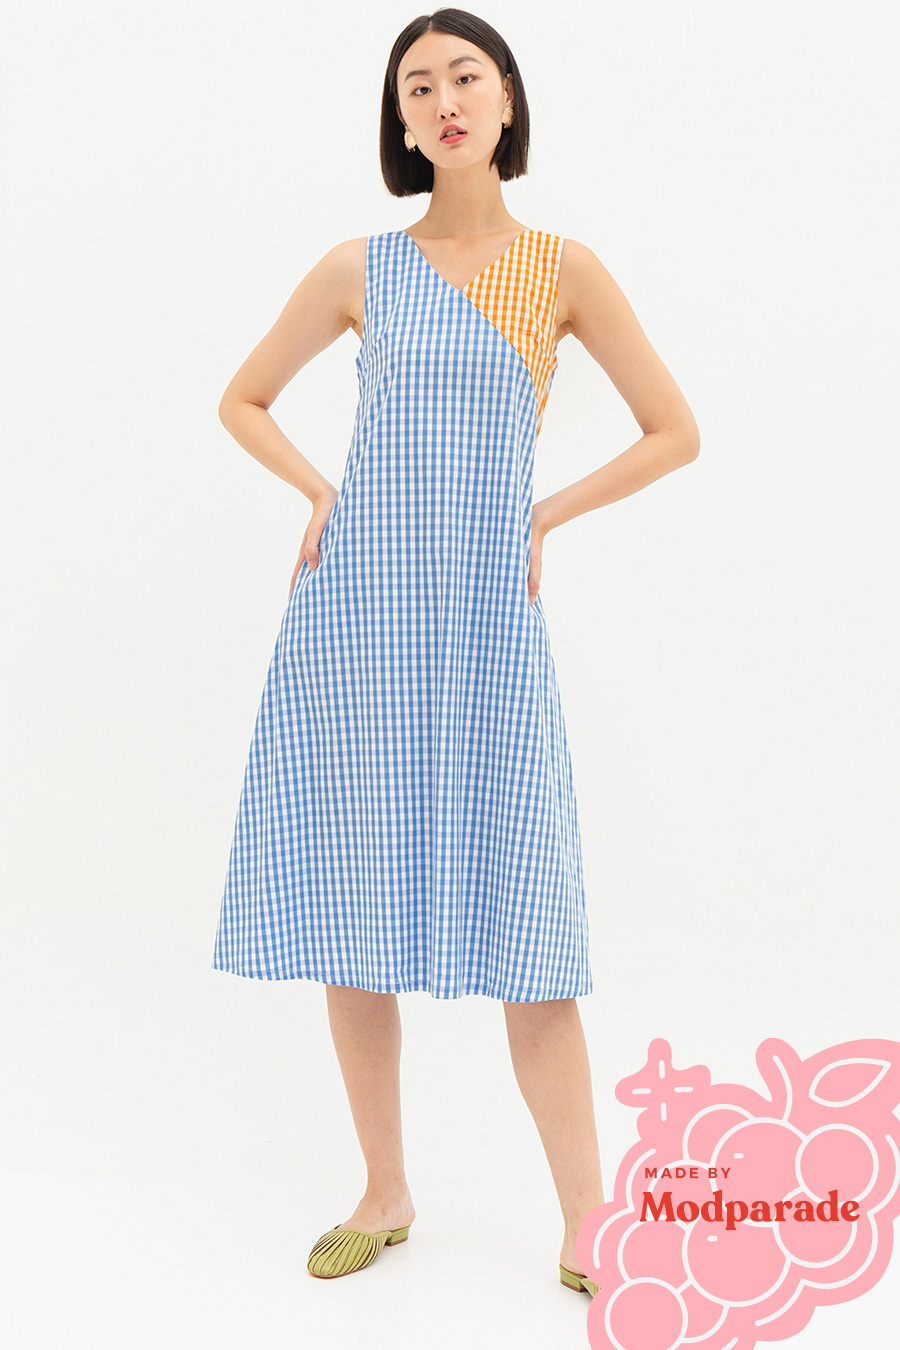 MIRIAM DRESS - GINGHAM BLOCK [BY MODPARADE]